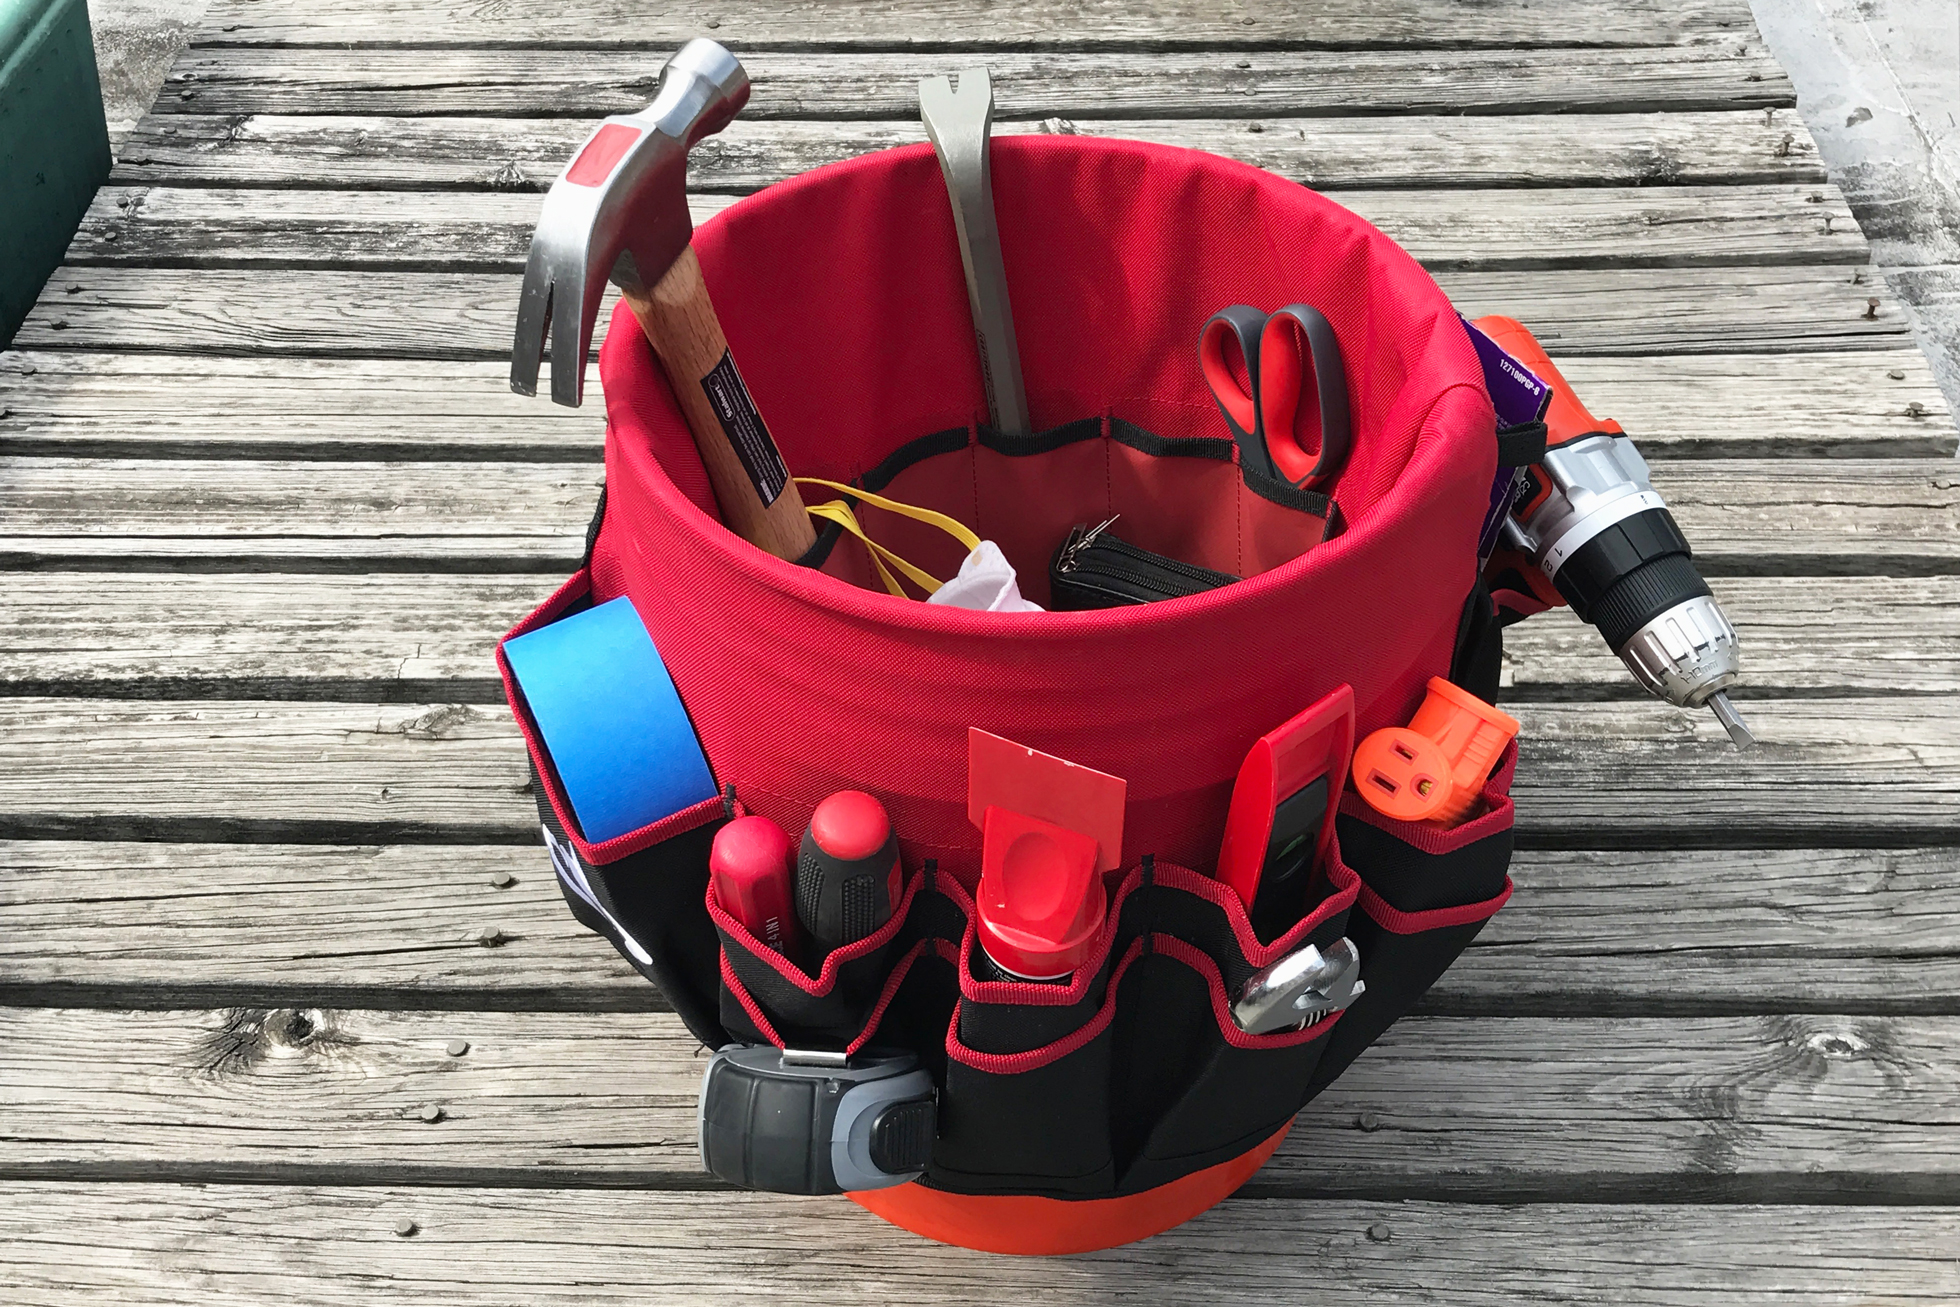 A red tool bucket liner in a bucket filled with hardware